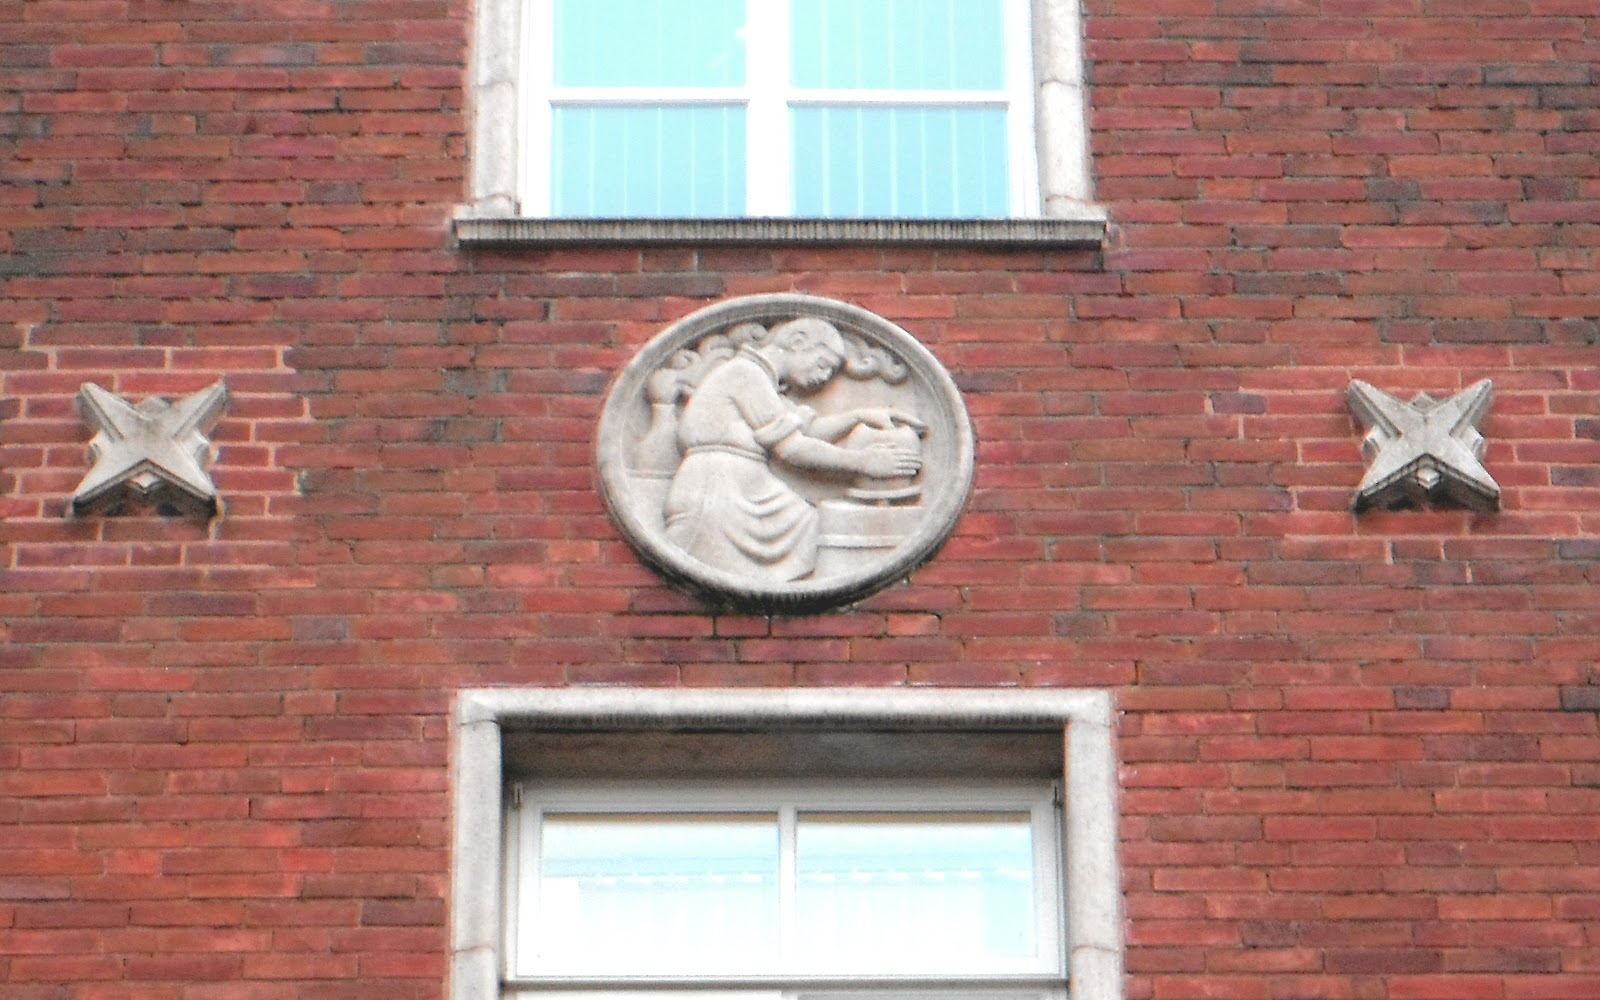 Roundel on The Lancaster Building in Newcastle under Lyme